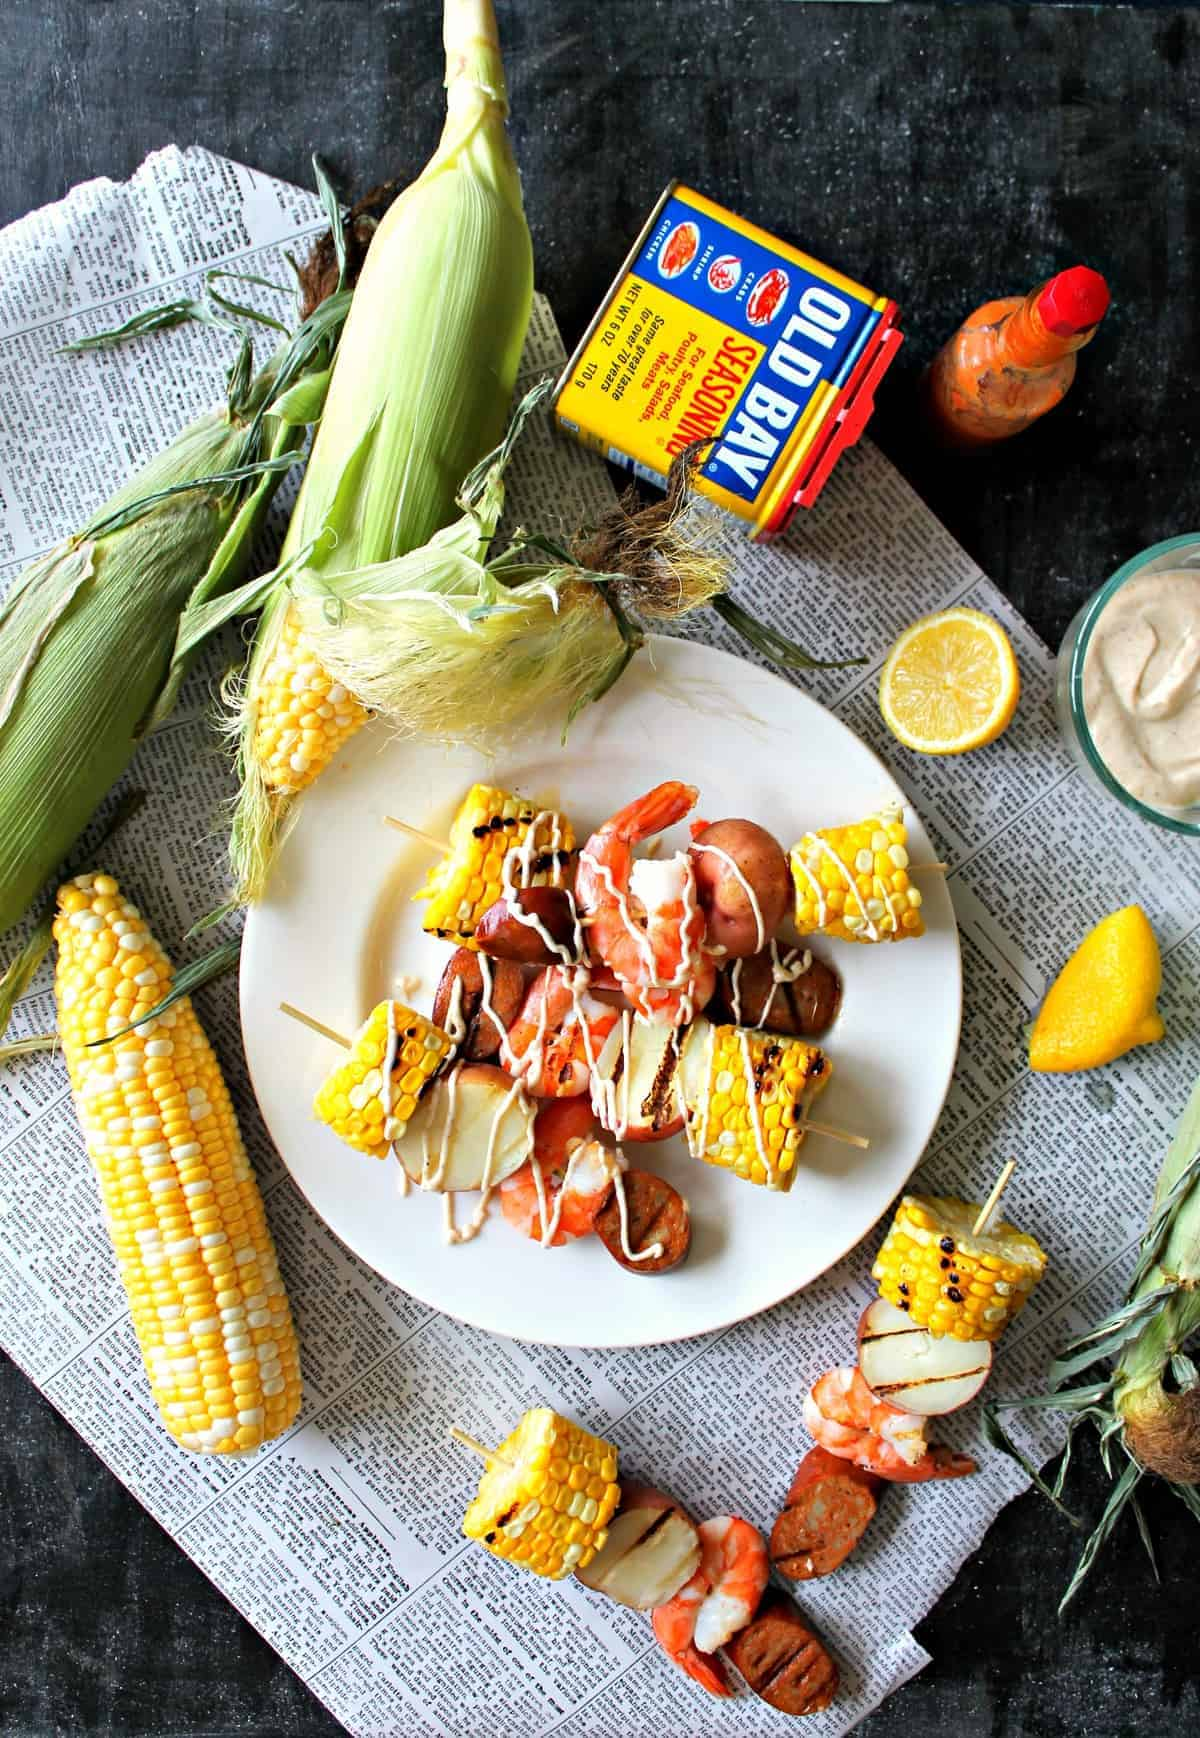 Shrimp Boil Kabobs with Old Bay Aioli -- summer on a stick! Yes, shrimp boils are traditionally casual & messy, but this skewered version adds a touch of sophistication that makes it a fantastic addition to even elegant summer gatherings.